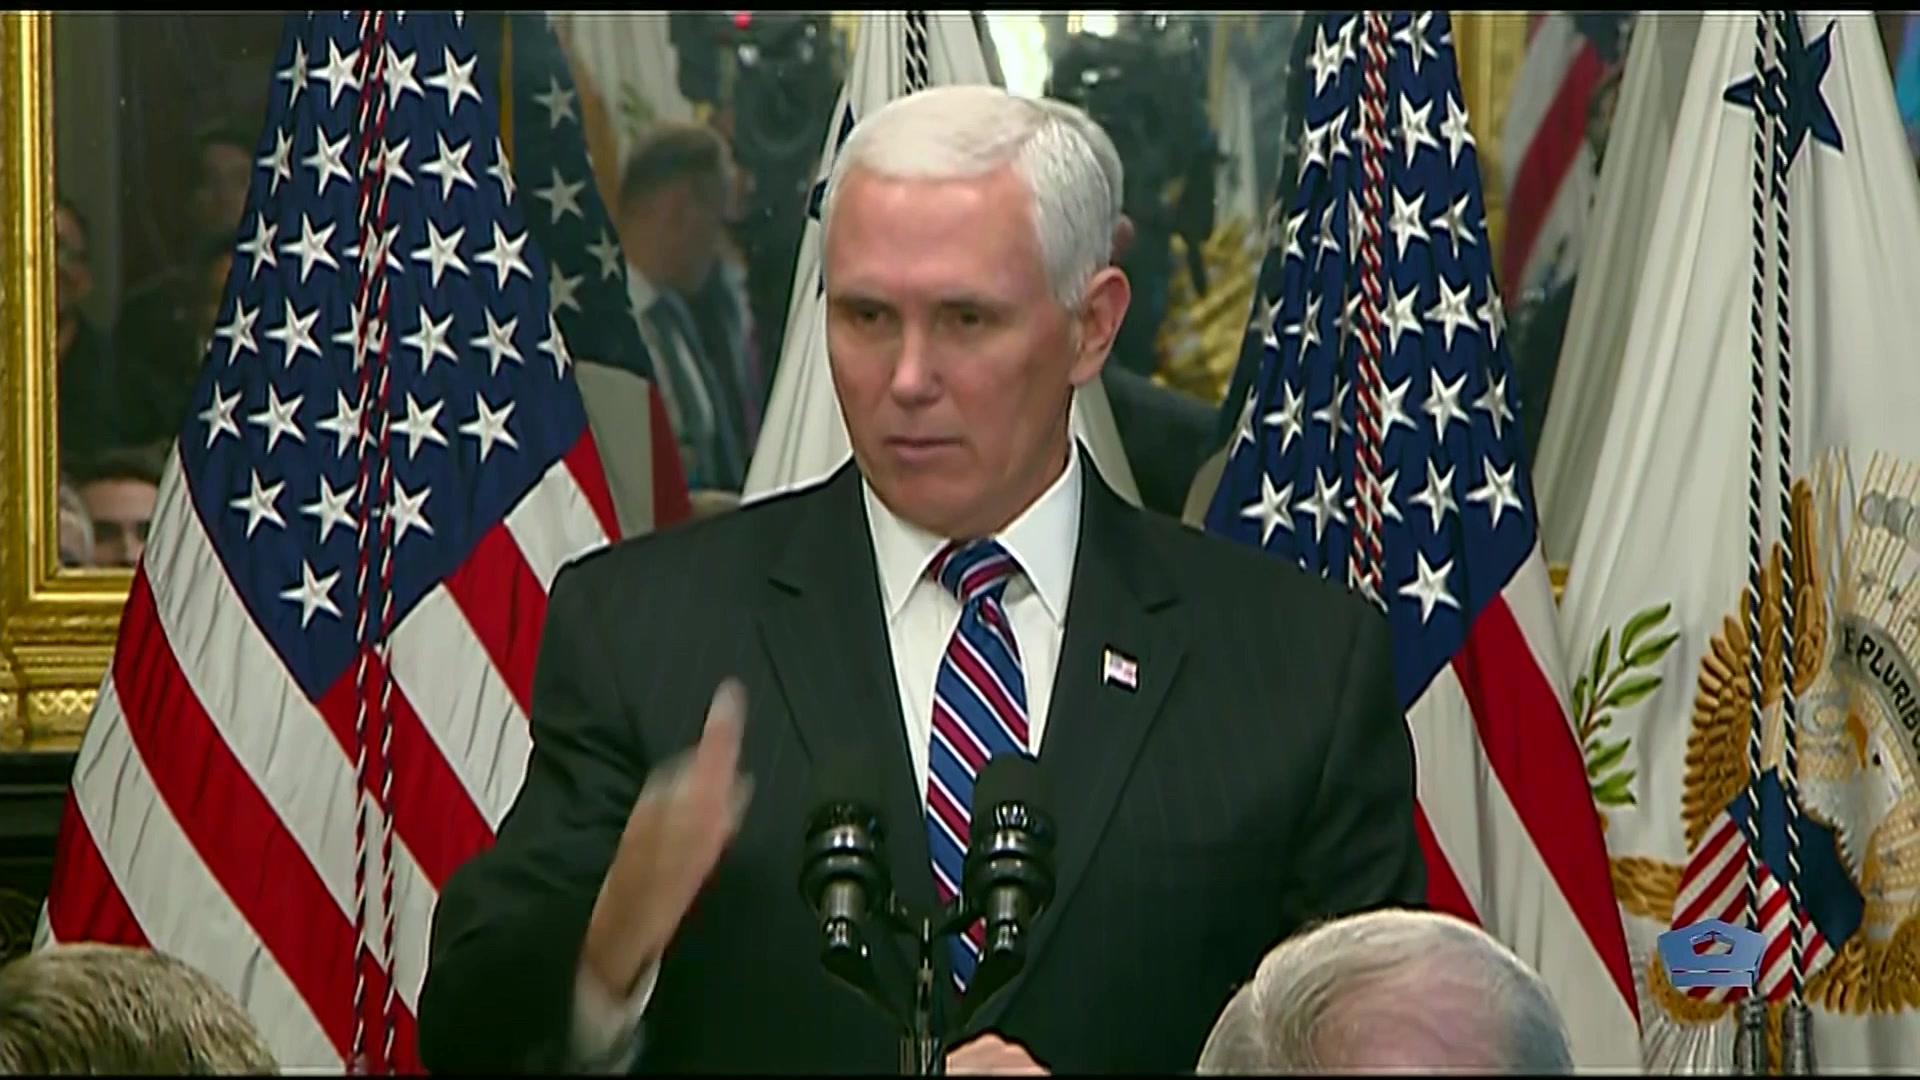 Vice President Mike Pence swore in Gen. John W. Raymond as the first Chief of Space Operations at the White House, today.